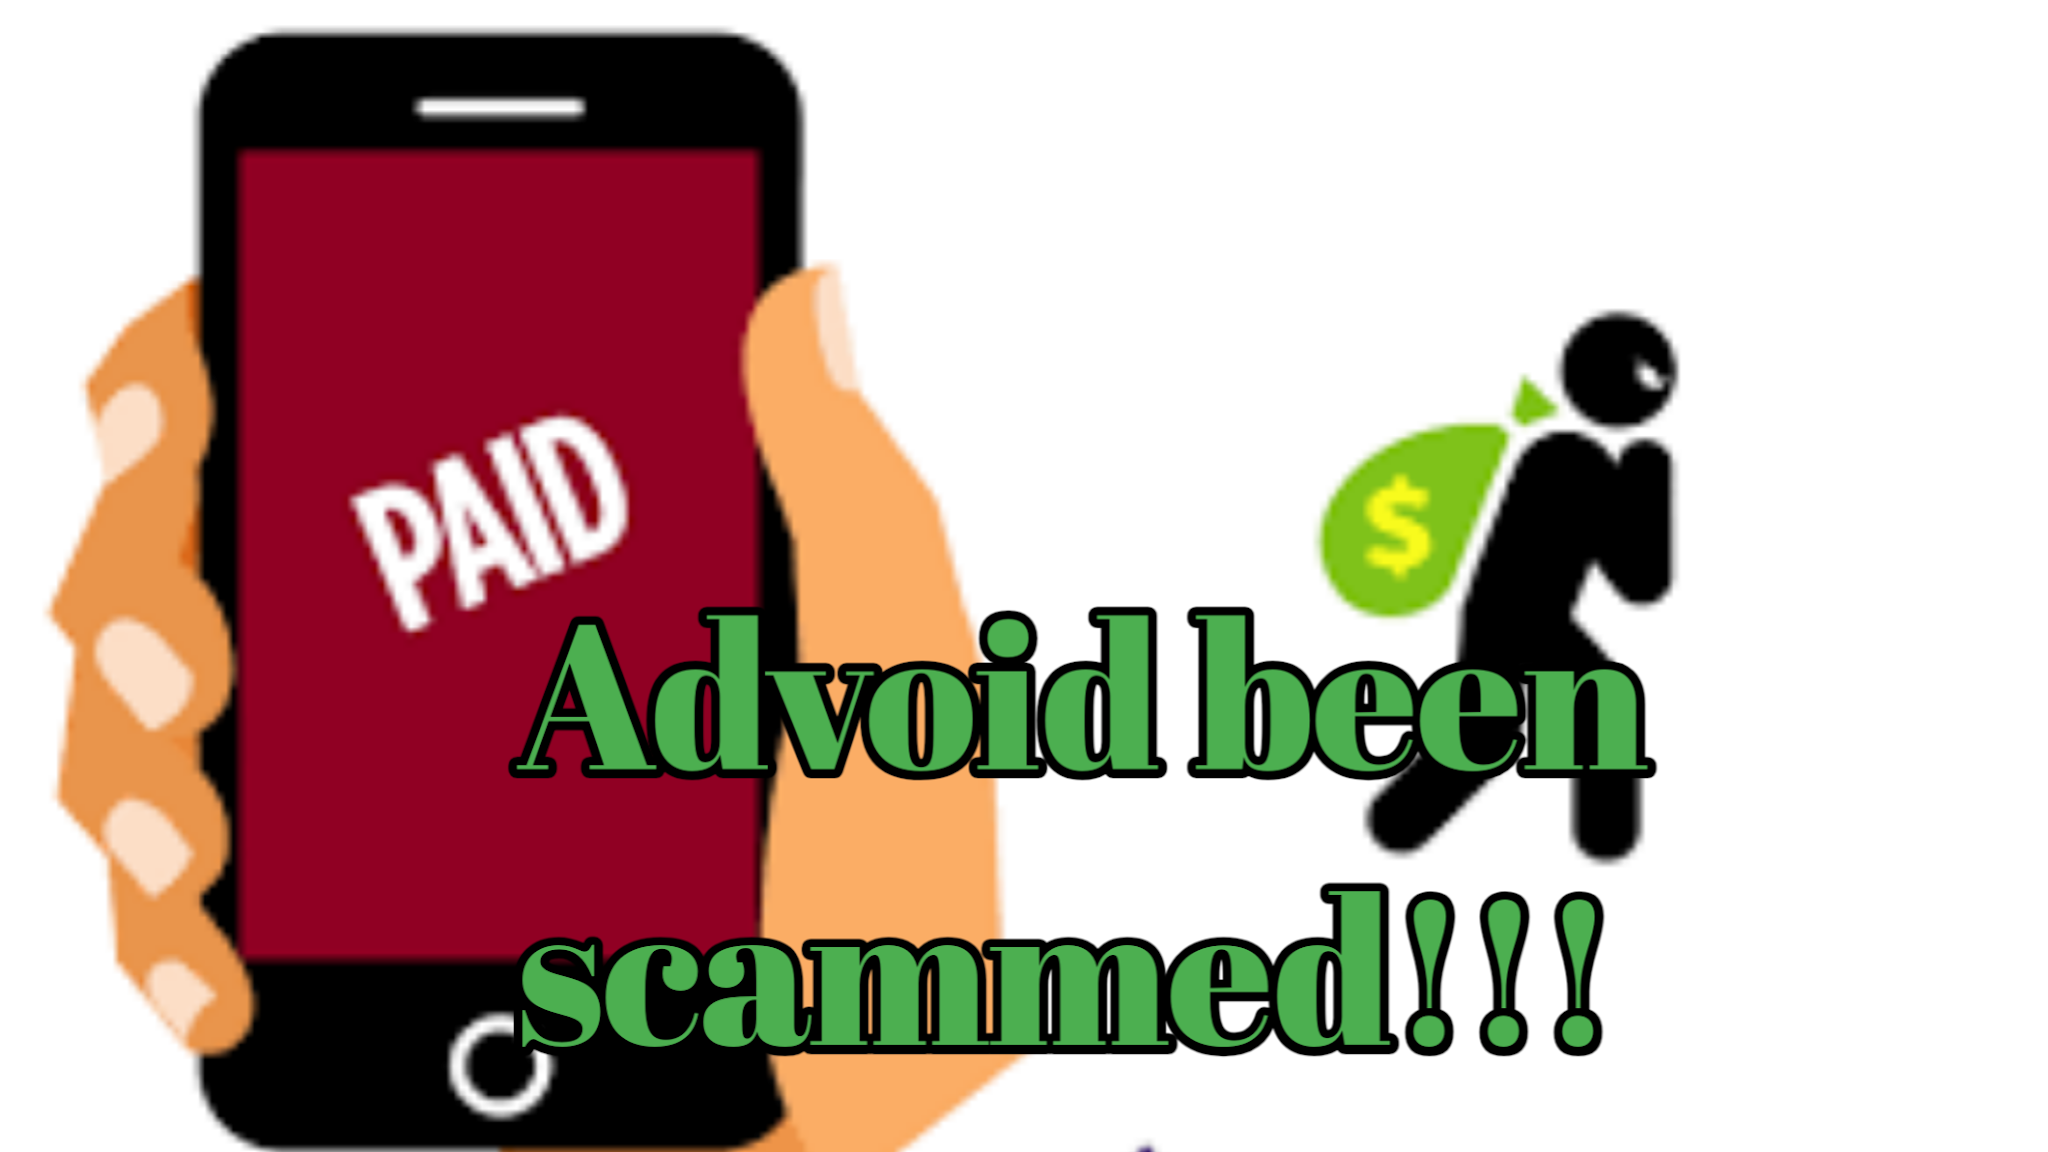 How to buy and sell on social media without beign scammed